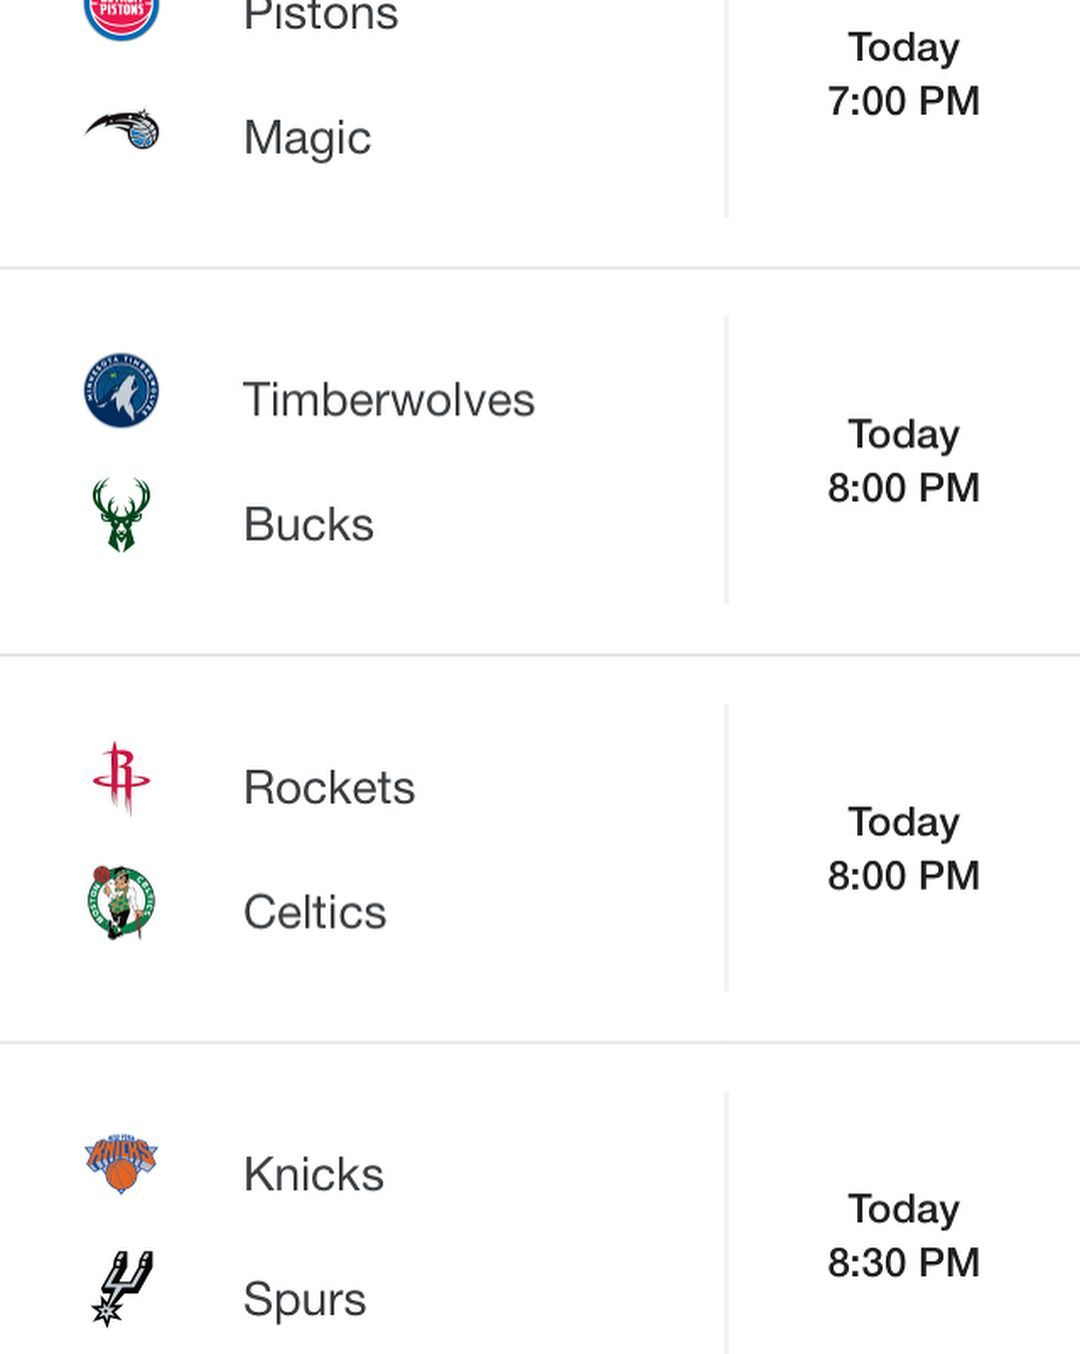 nba schedule for today! #nba #nbagames #nbaschedule #pistons #magic